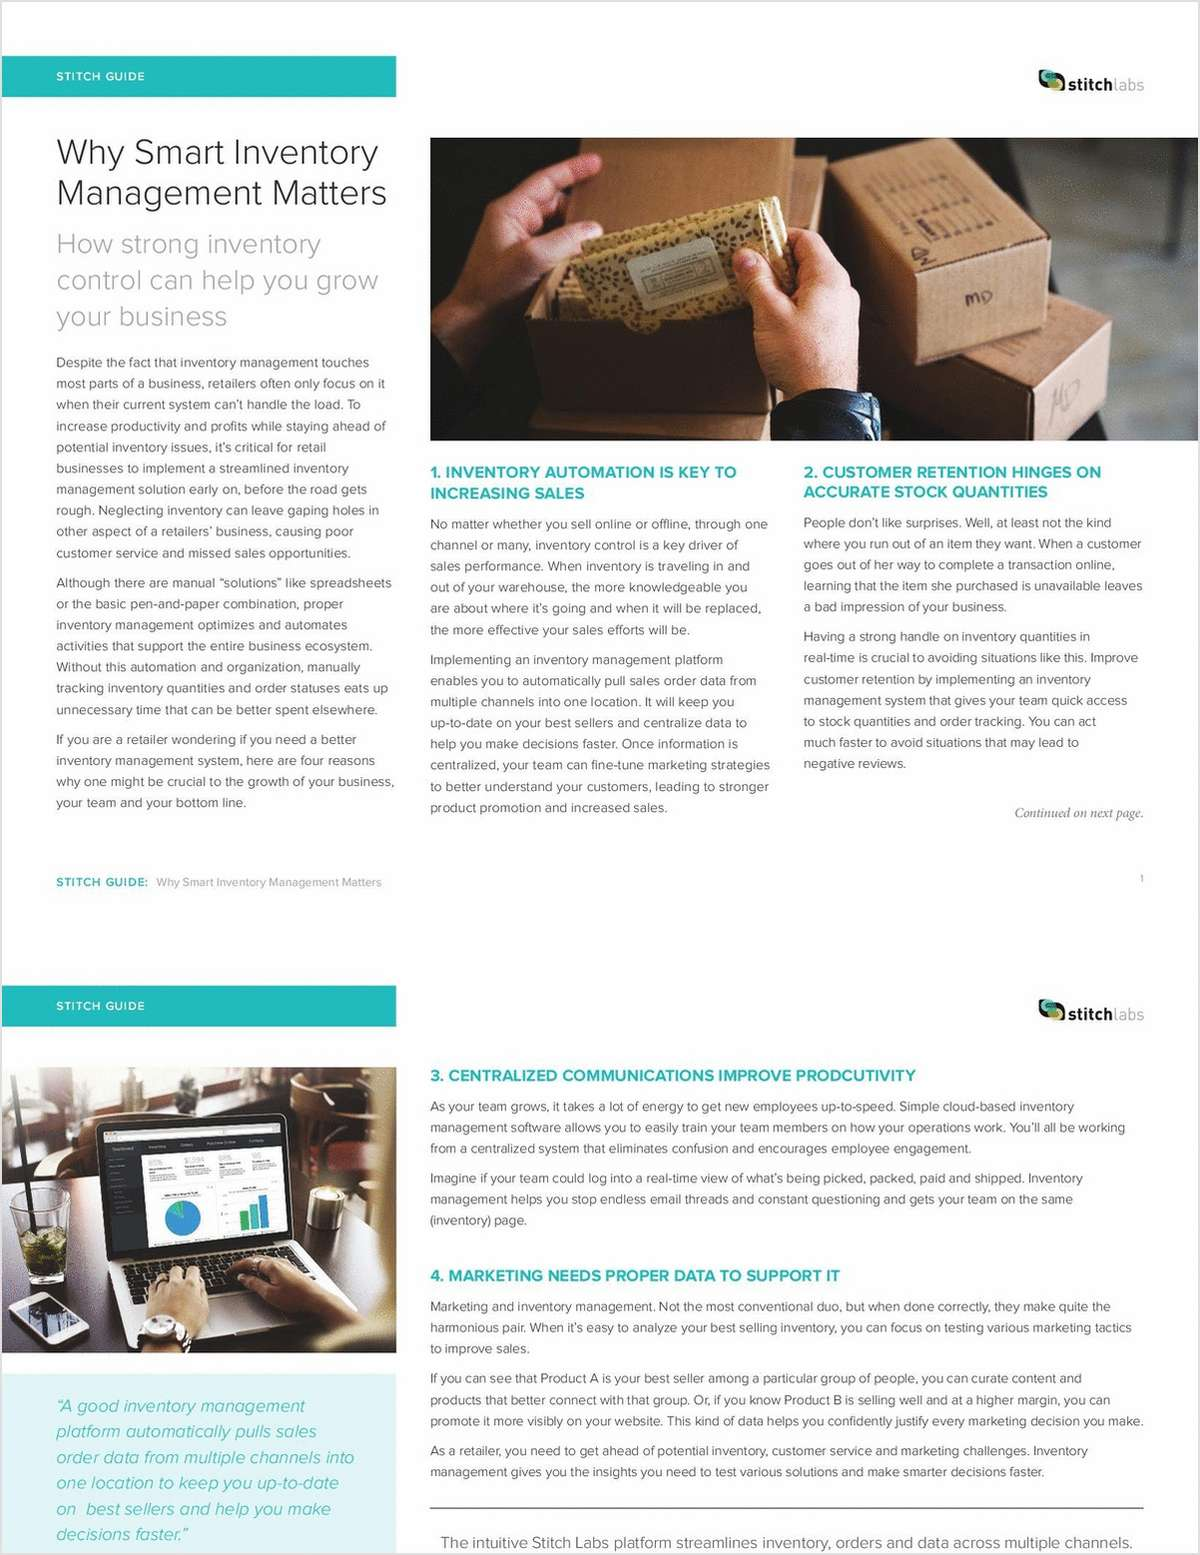 Why Smart Inventory Management Matters